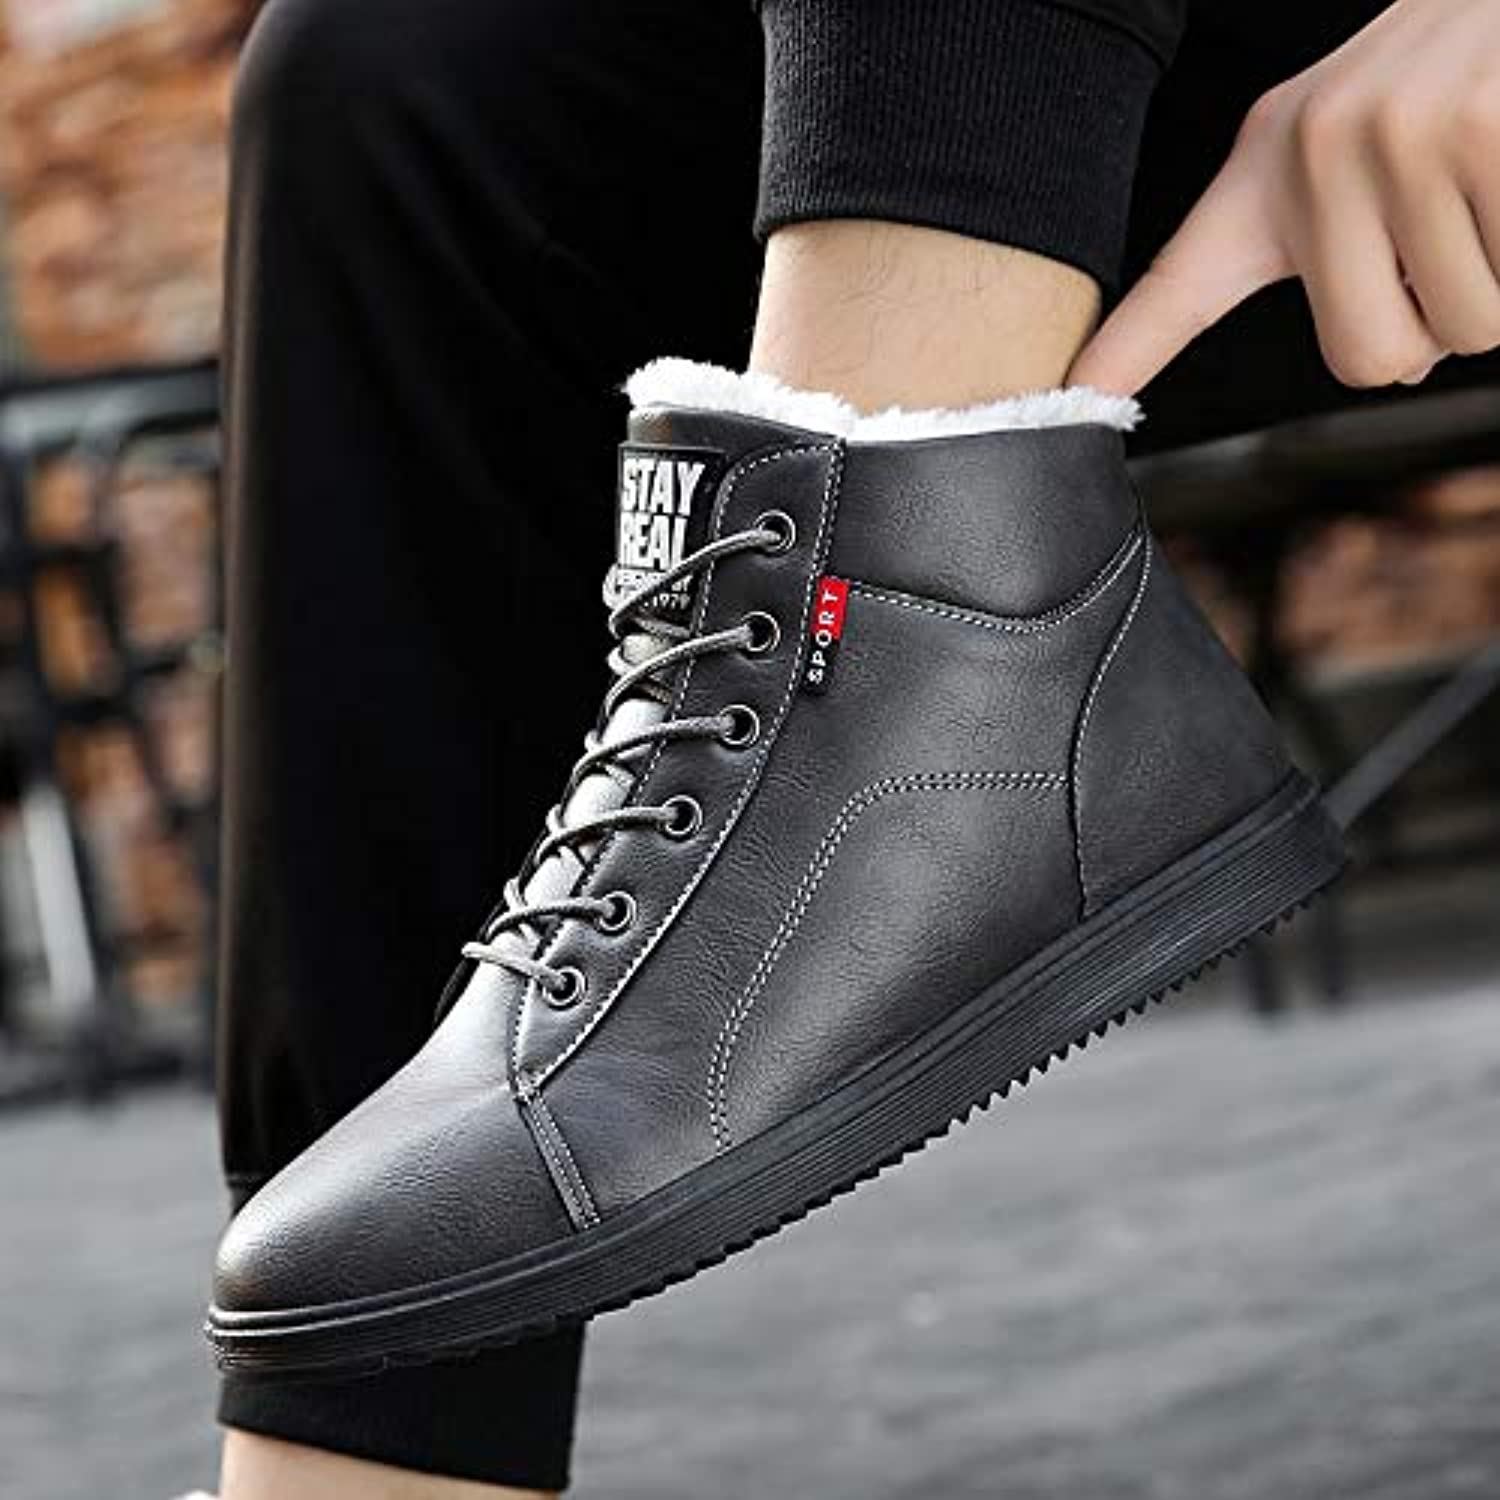 LOVDRAM Boots Men's Men'S Booties Winter New Snow Boots Casual Cotton Boots Thick Warm Warm shoes Student Martin Boots Men'S shoes